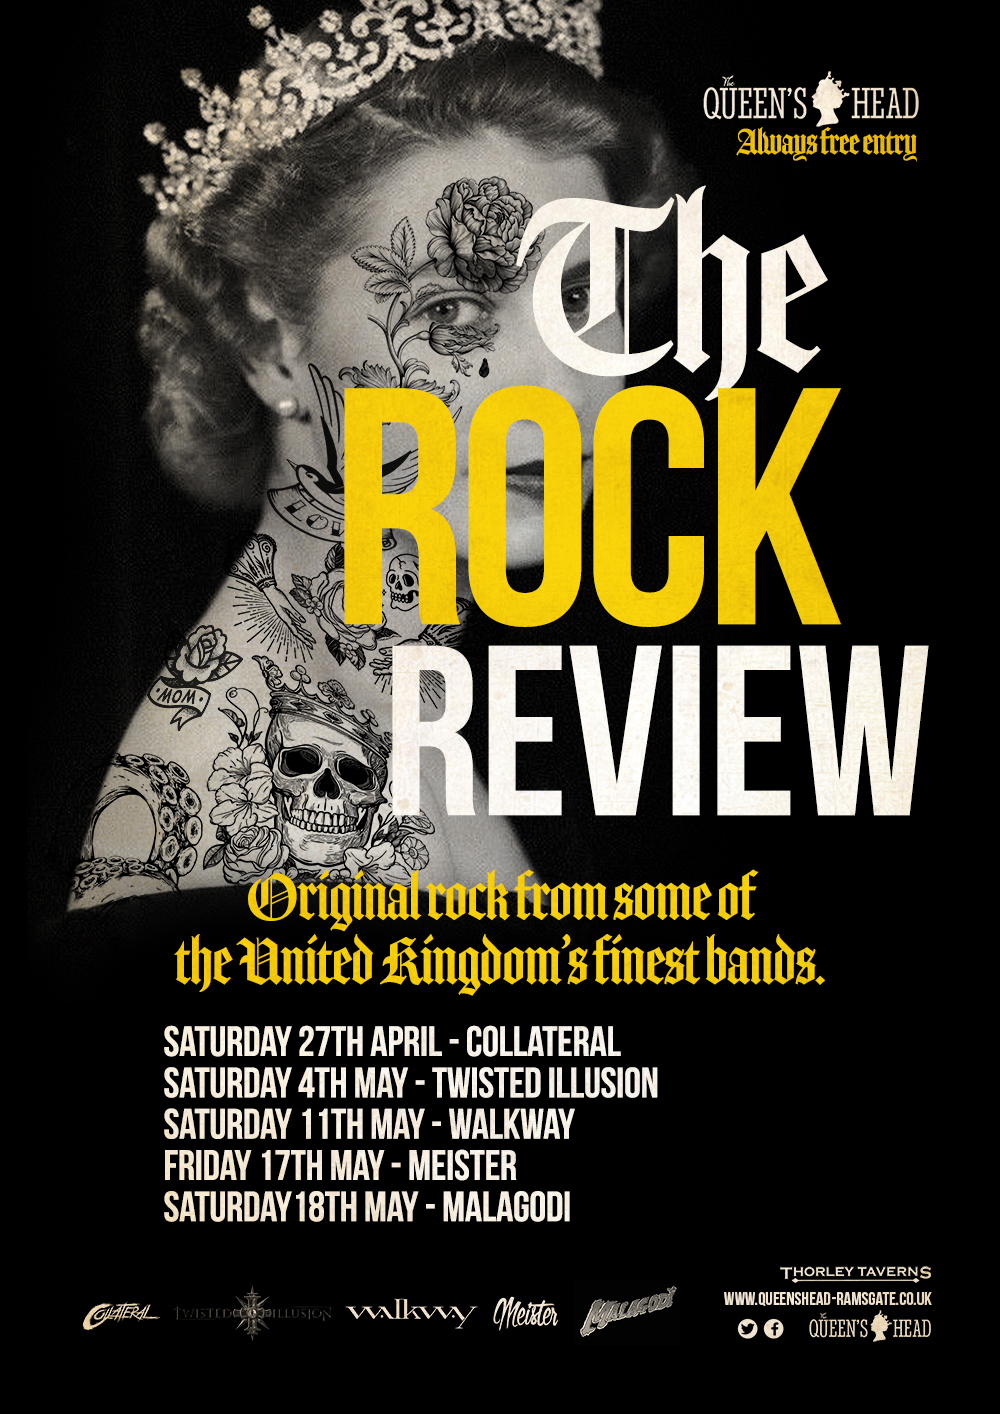 The Queen's Head Rock Review 2109 v3.jpg